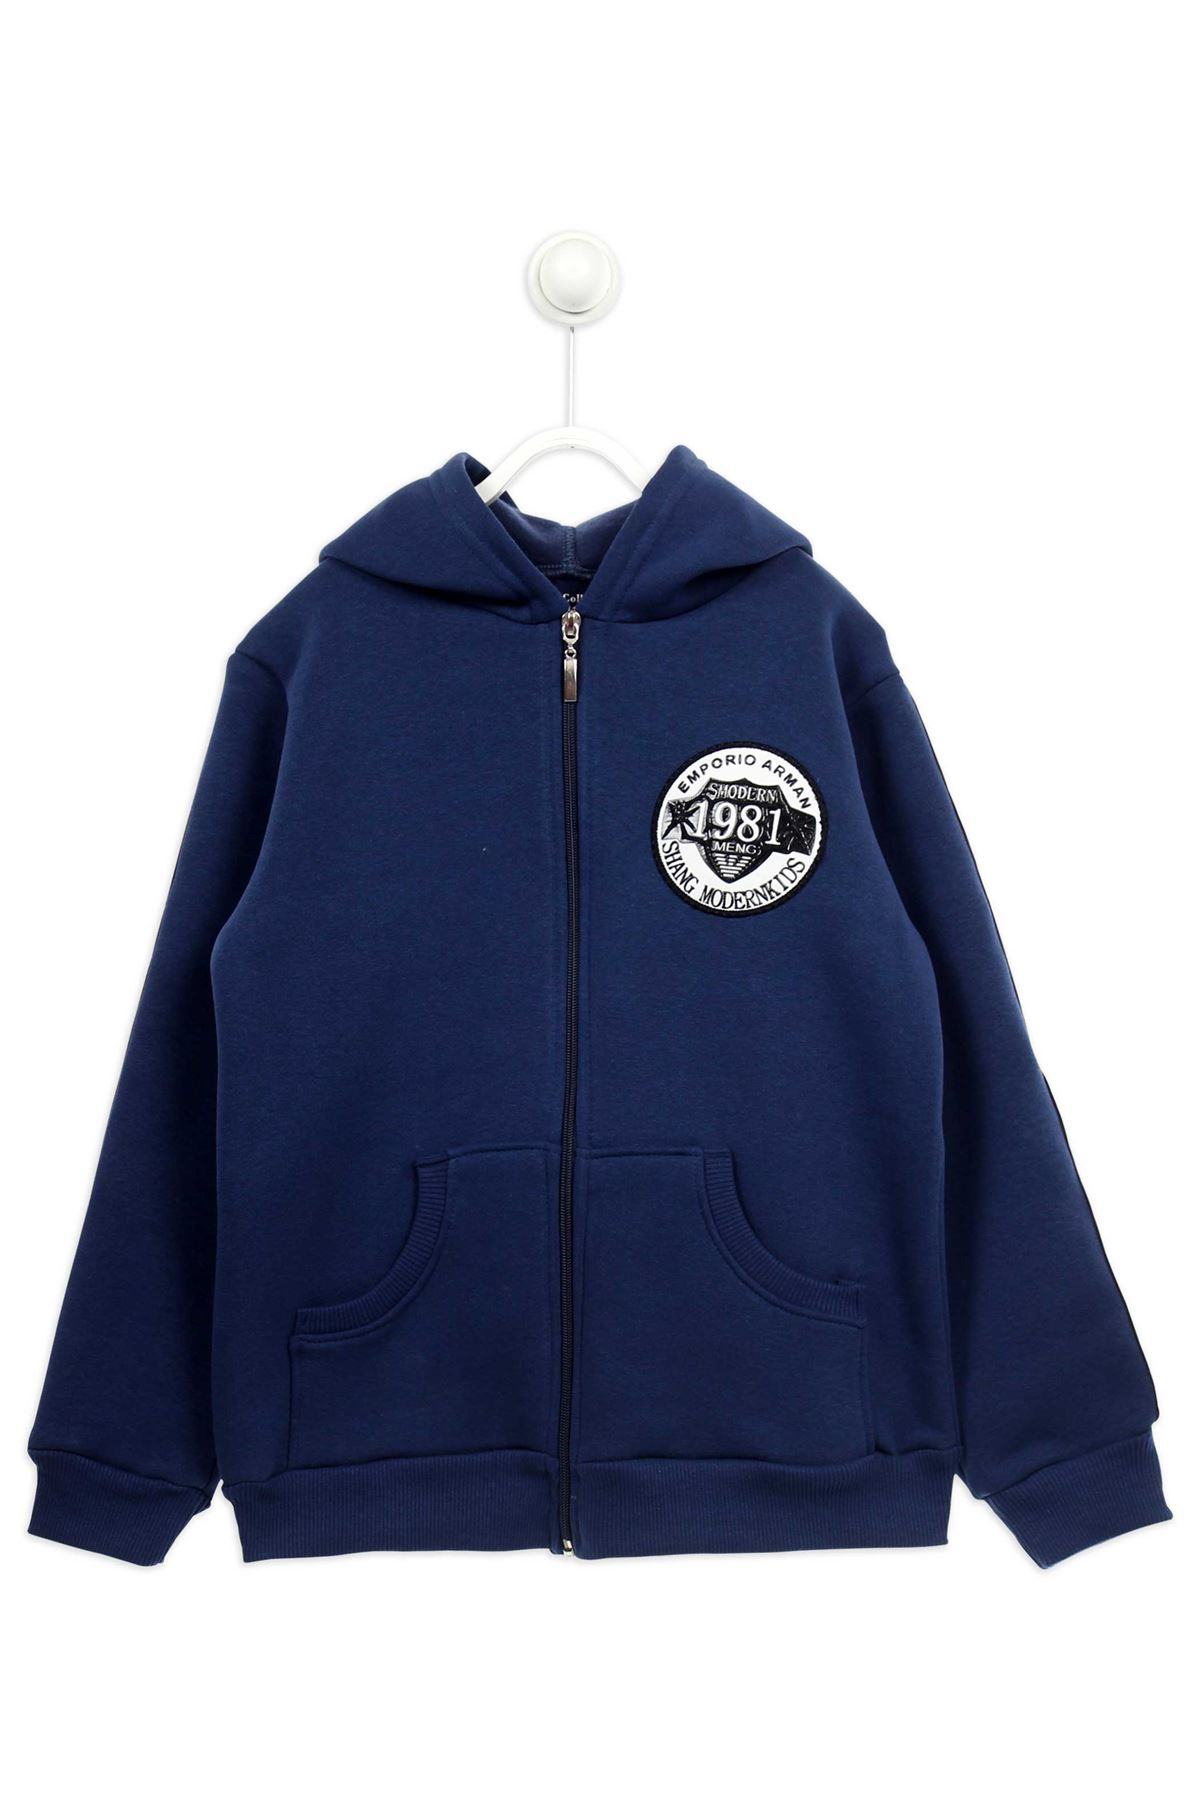 Indigo Winterisation Male Child Jacket